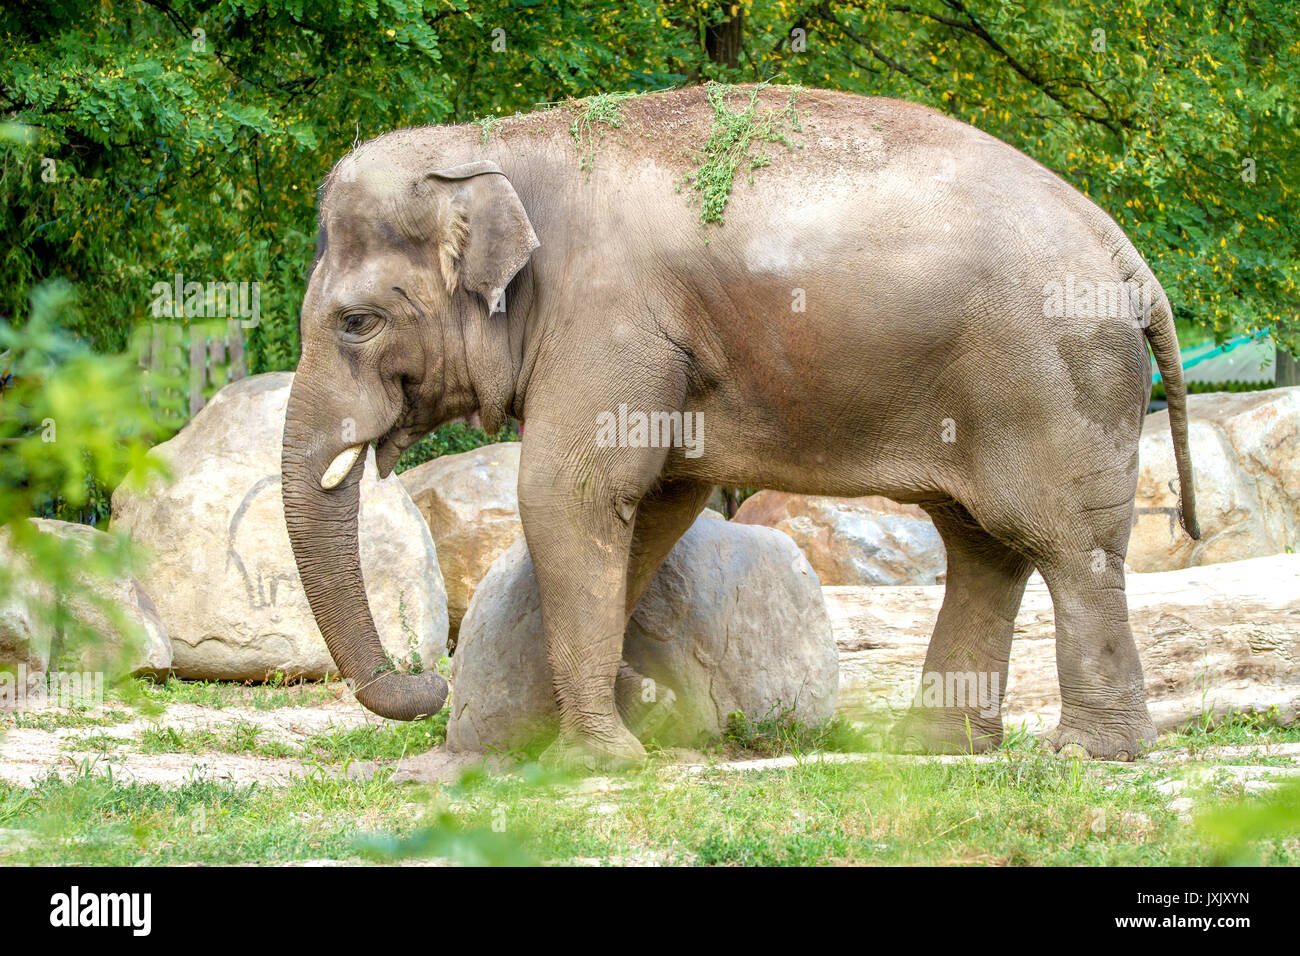 And the image of a large elephant walks in the enclosure of the zoo - Stock Image